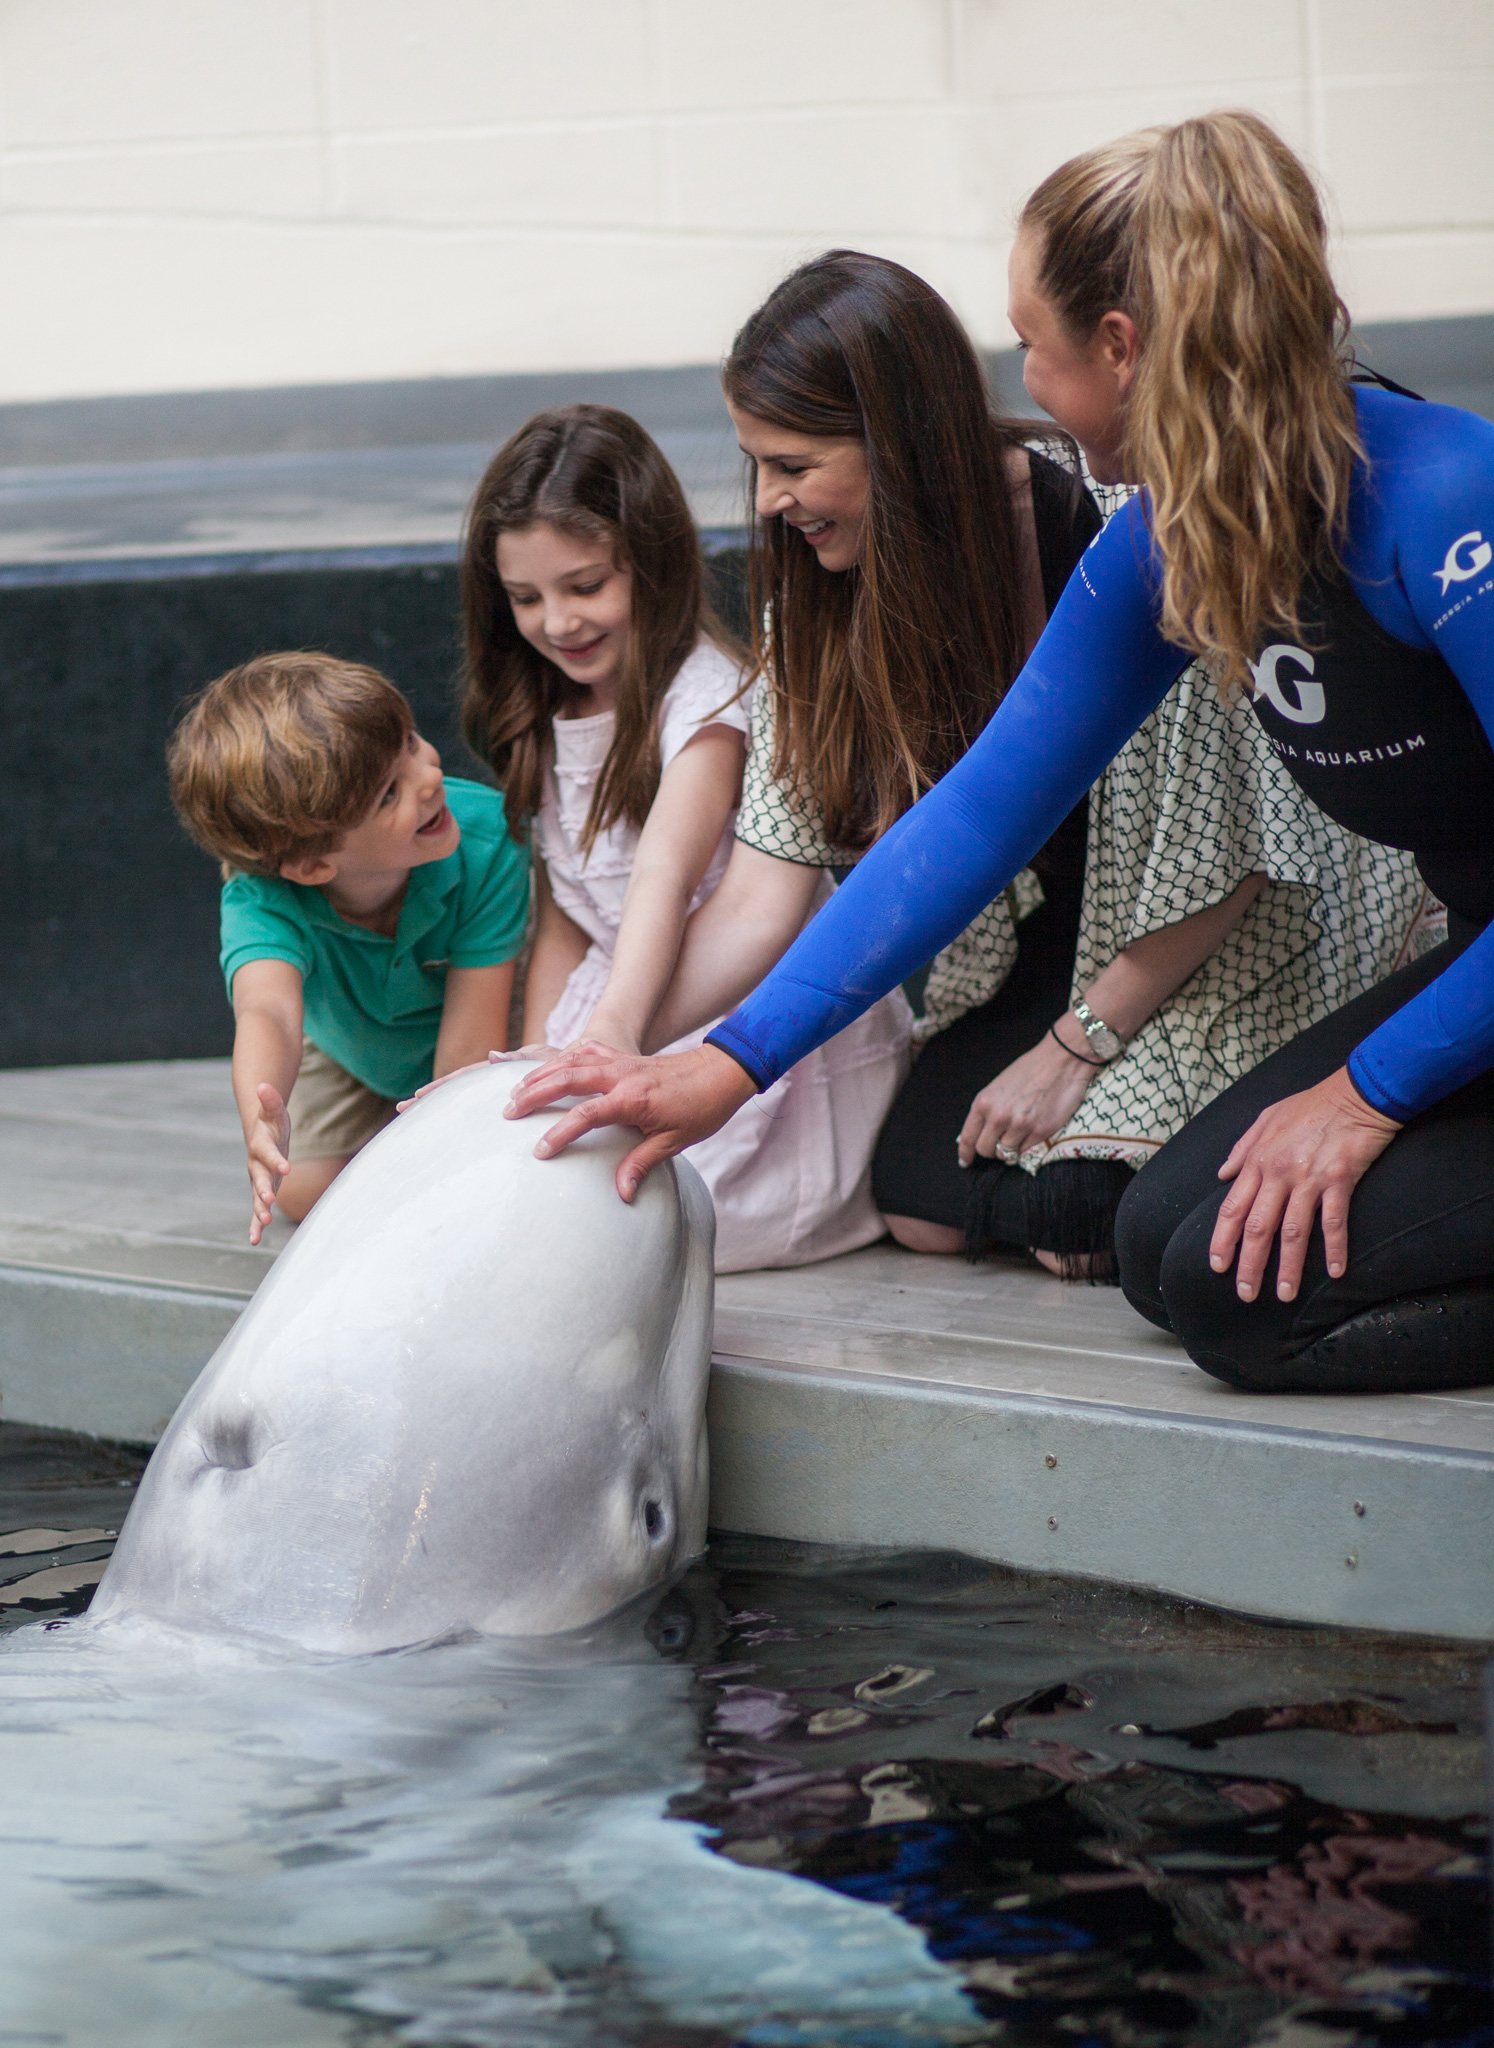 Through interactive programs, guests are able to learn, be inspired, and get close to a beluga whale at Georgia Aquarium.